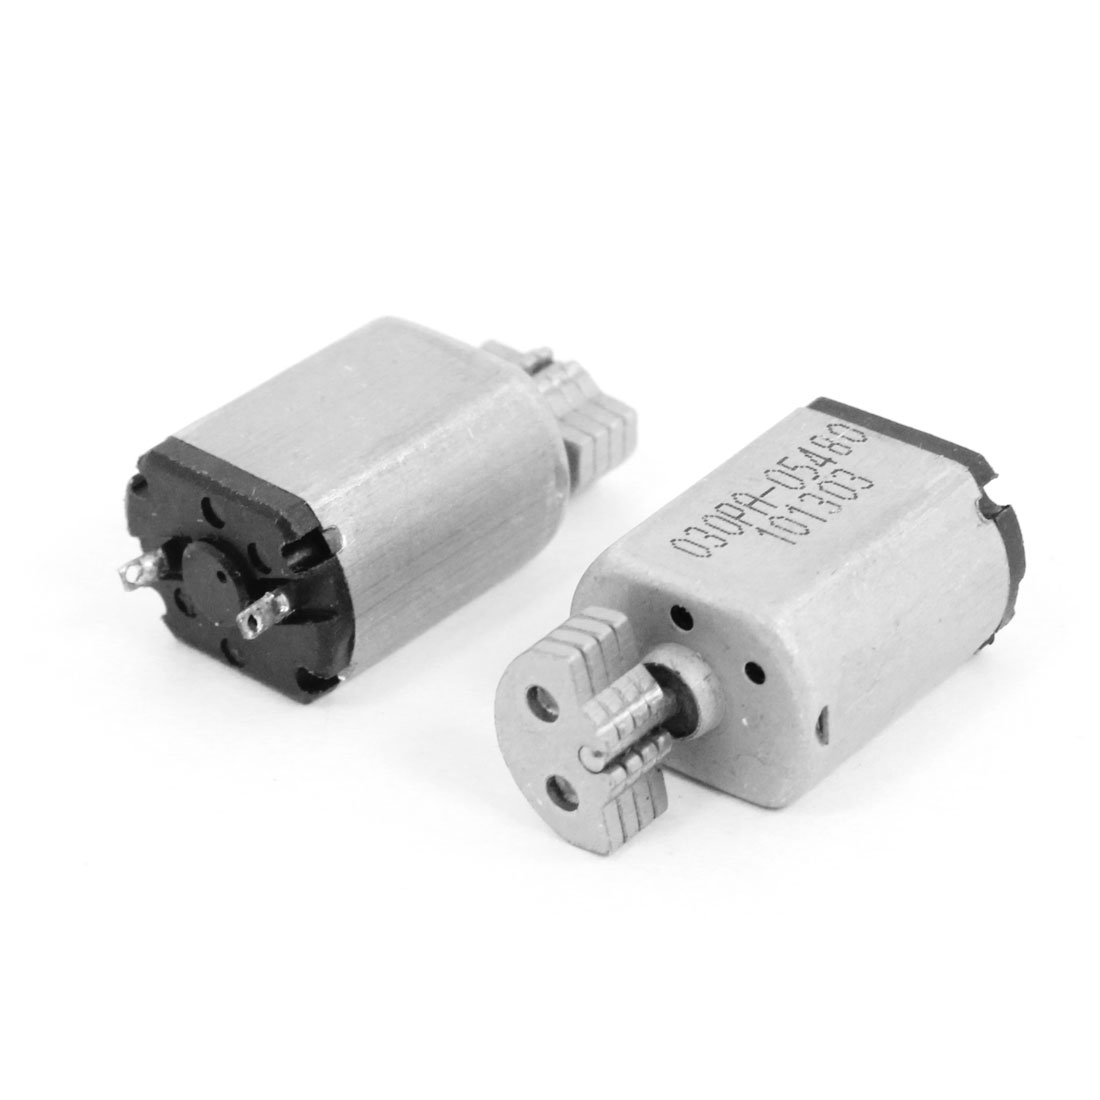 2pcs DIY Toys Cylinder Electric Micro Vibration Motor 3200RPM DC 1.5-9V 0.08A